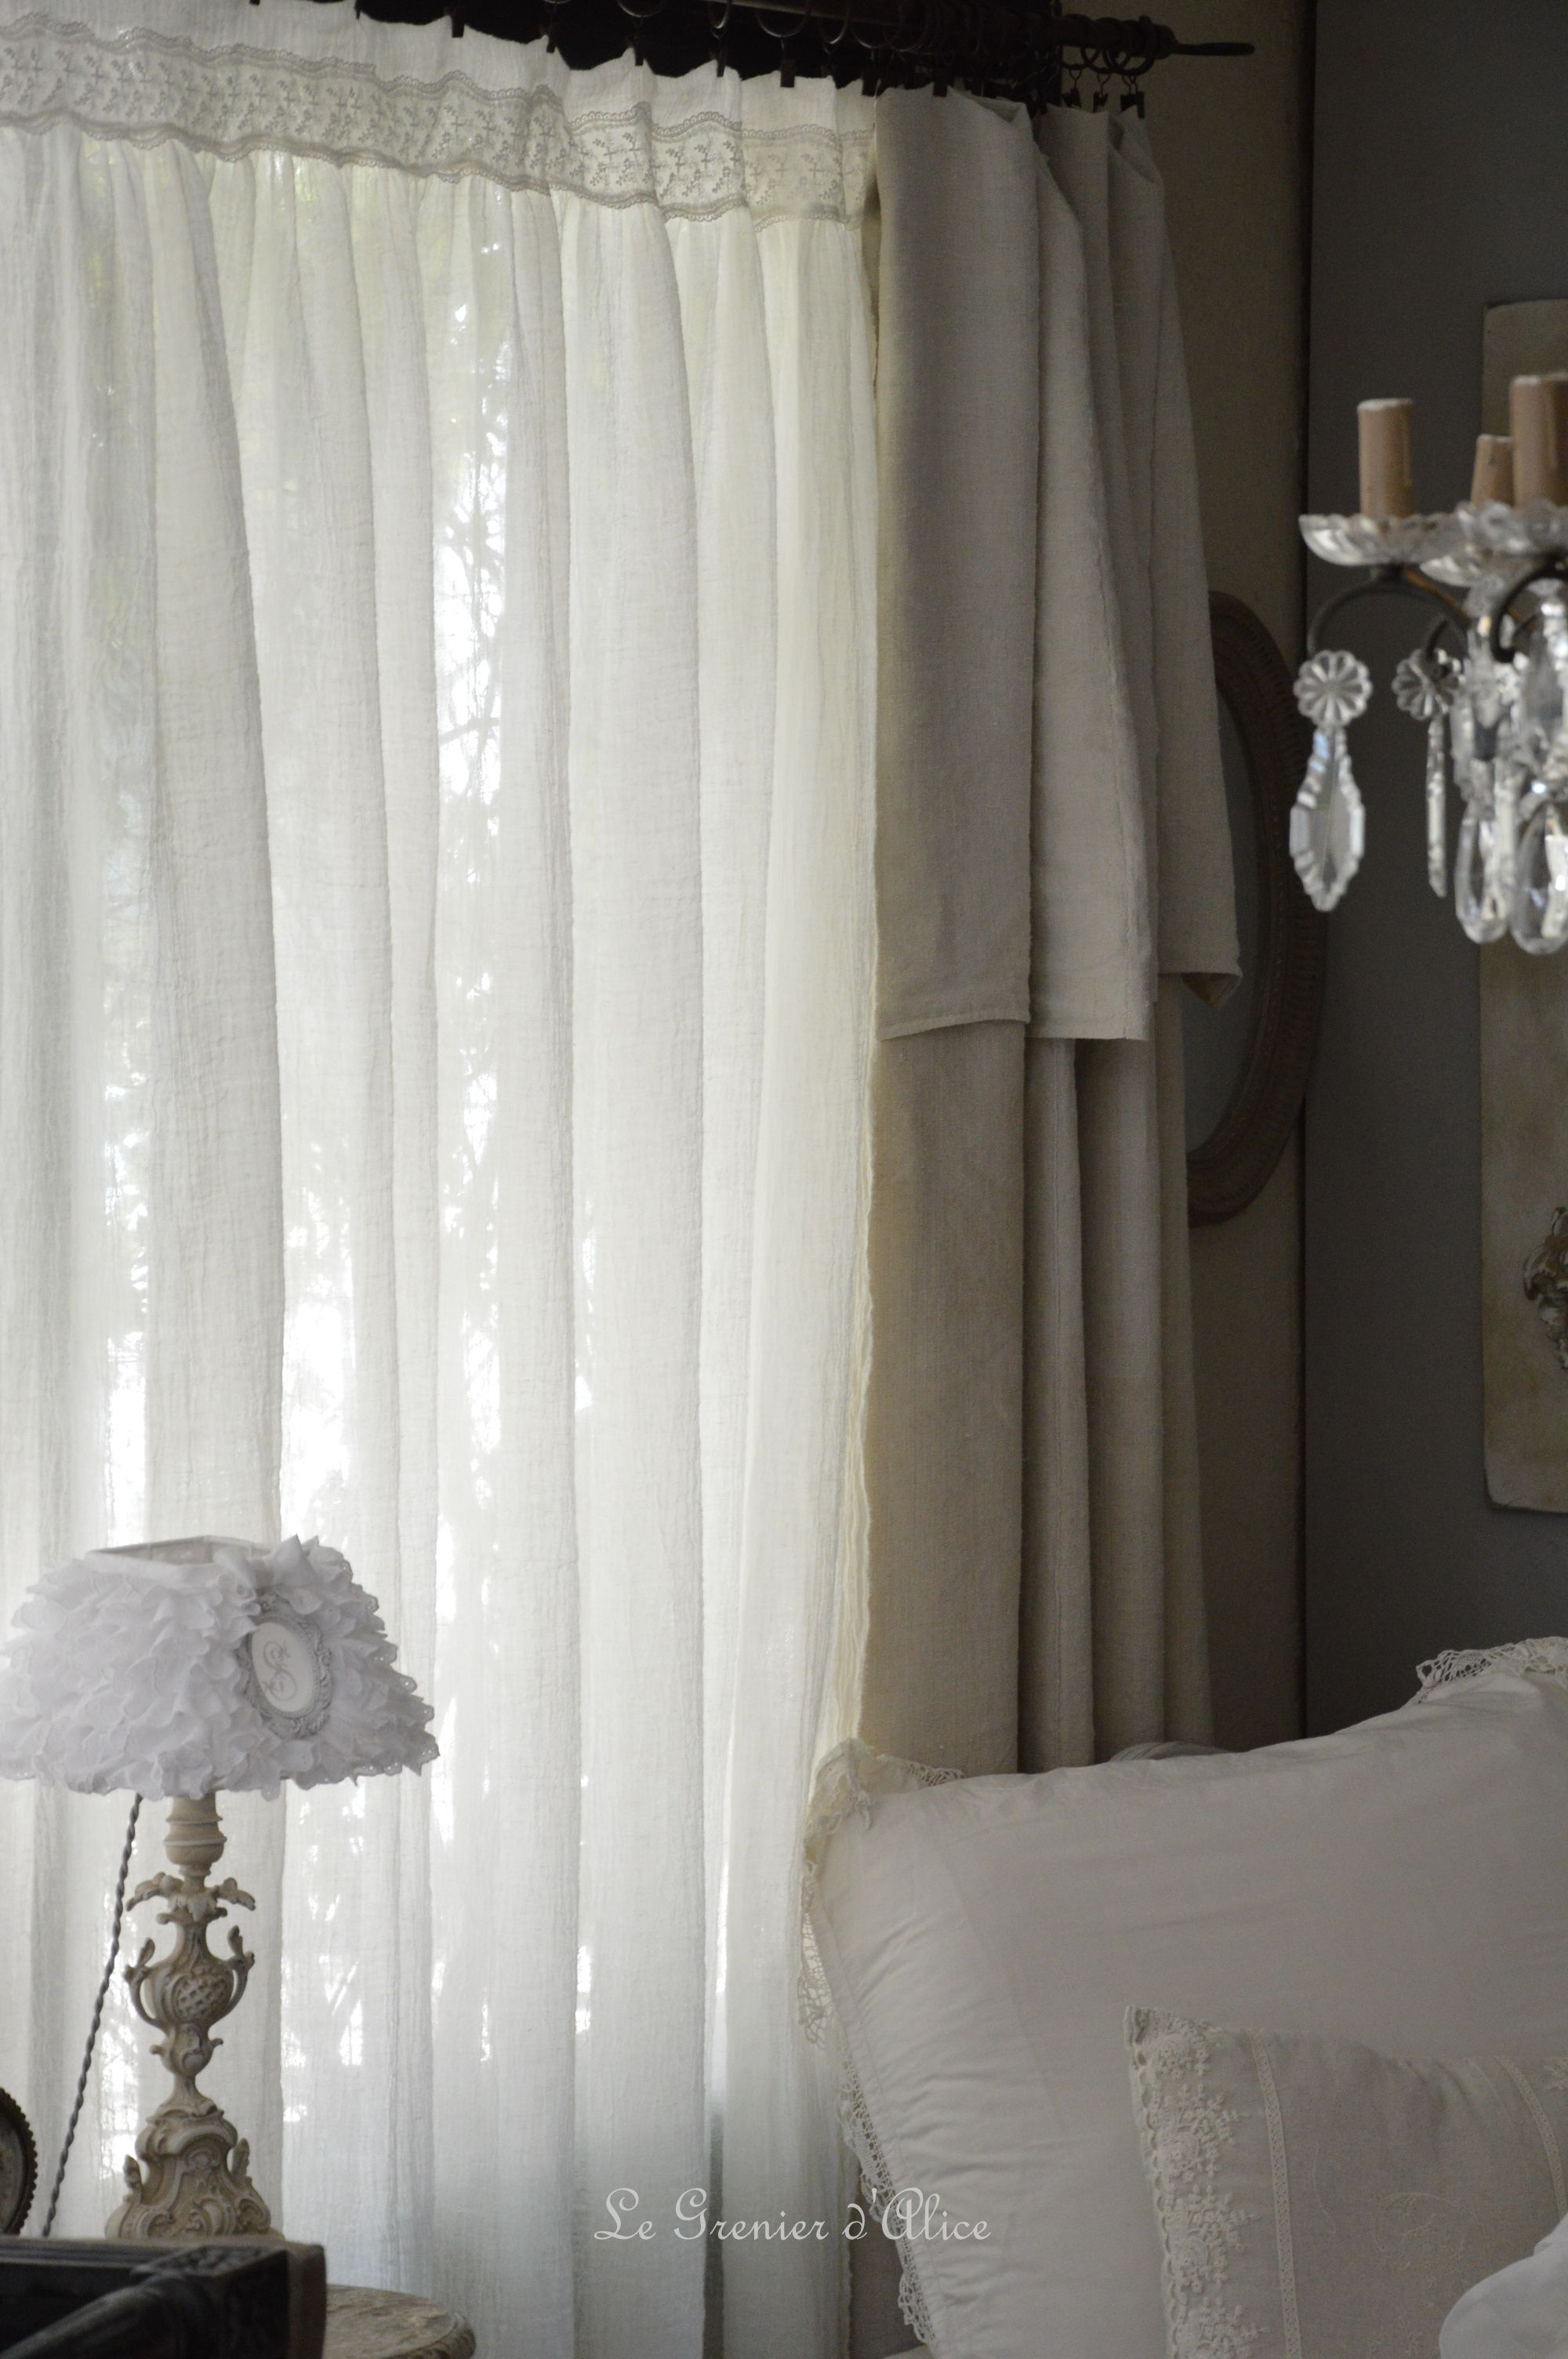 rideau voile de lin shabby chic romantique dentelle shabby and romantic curtain romantique. Black Bedroom Furniture Sets. Home Design Ideas